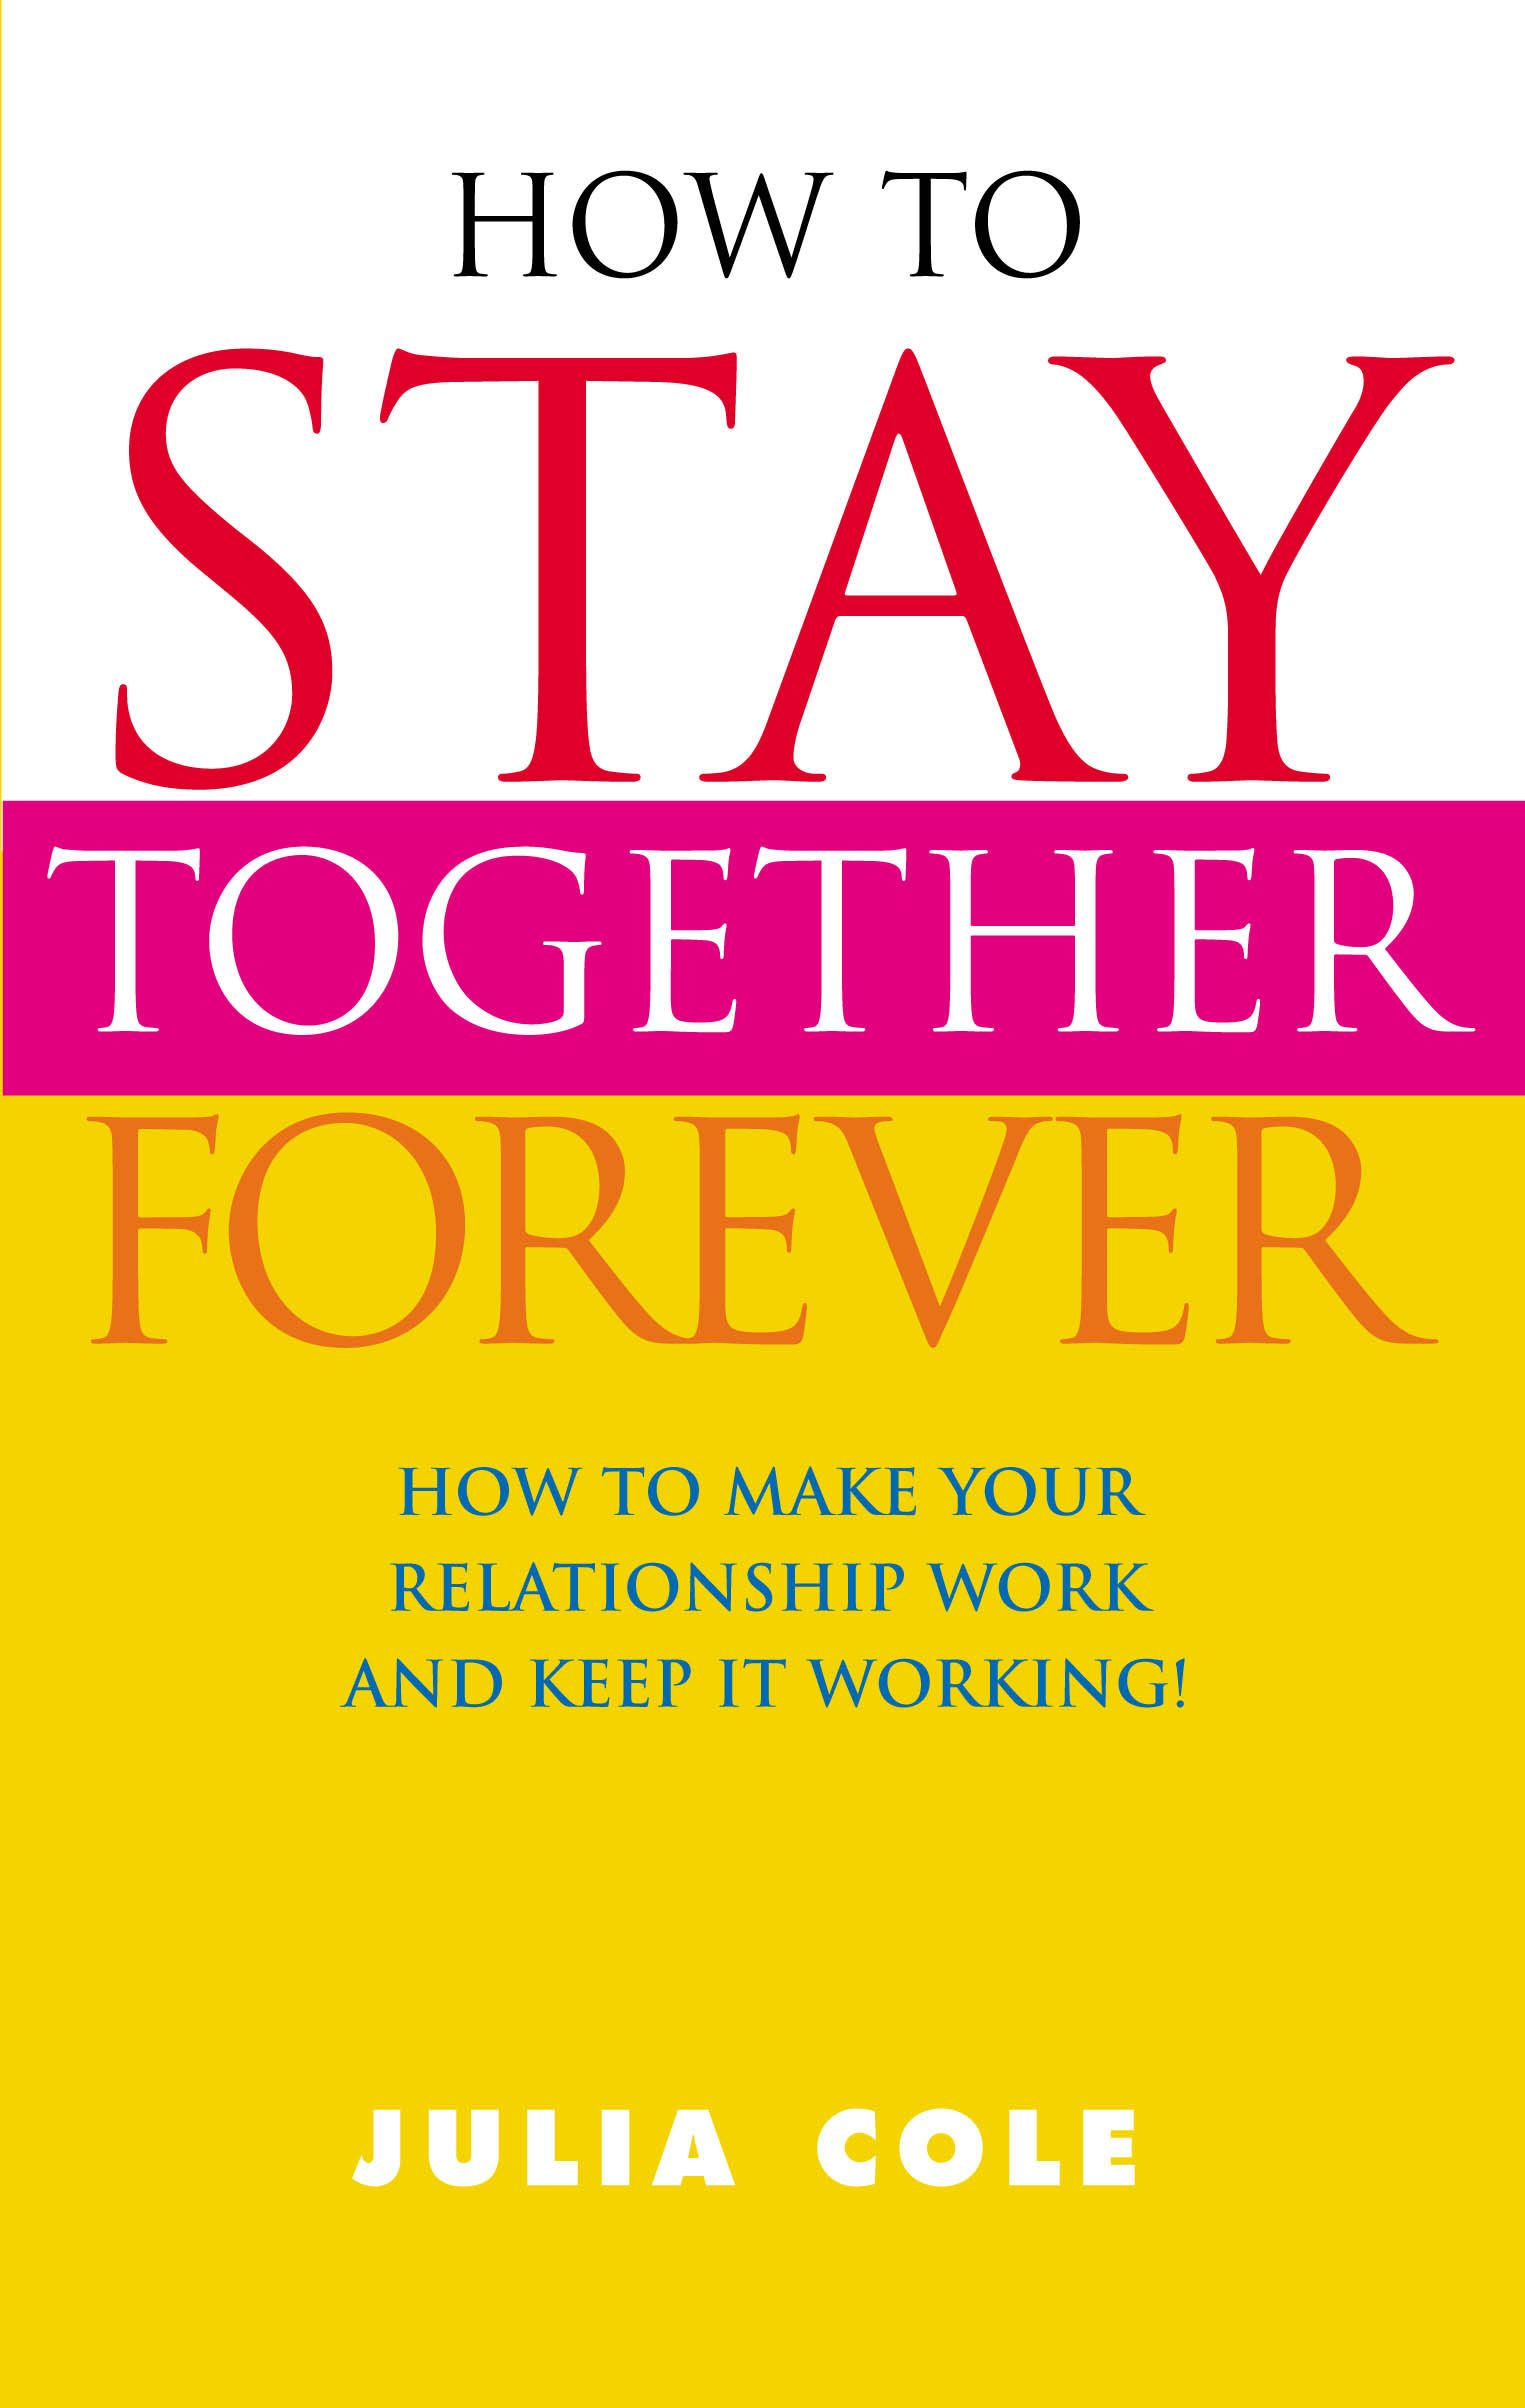 How To Stay Together Forever How To Make Your Relationship Work and Keep It Working!